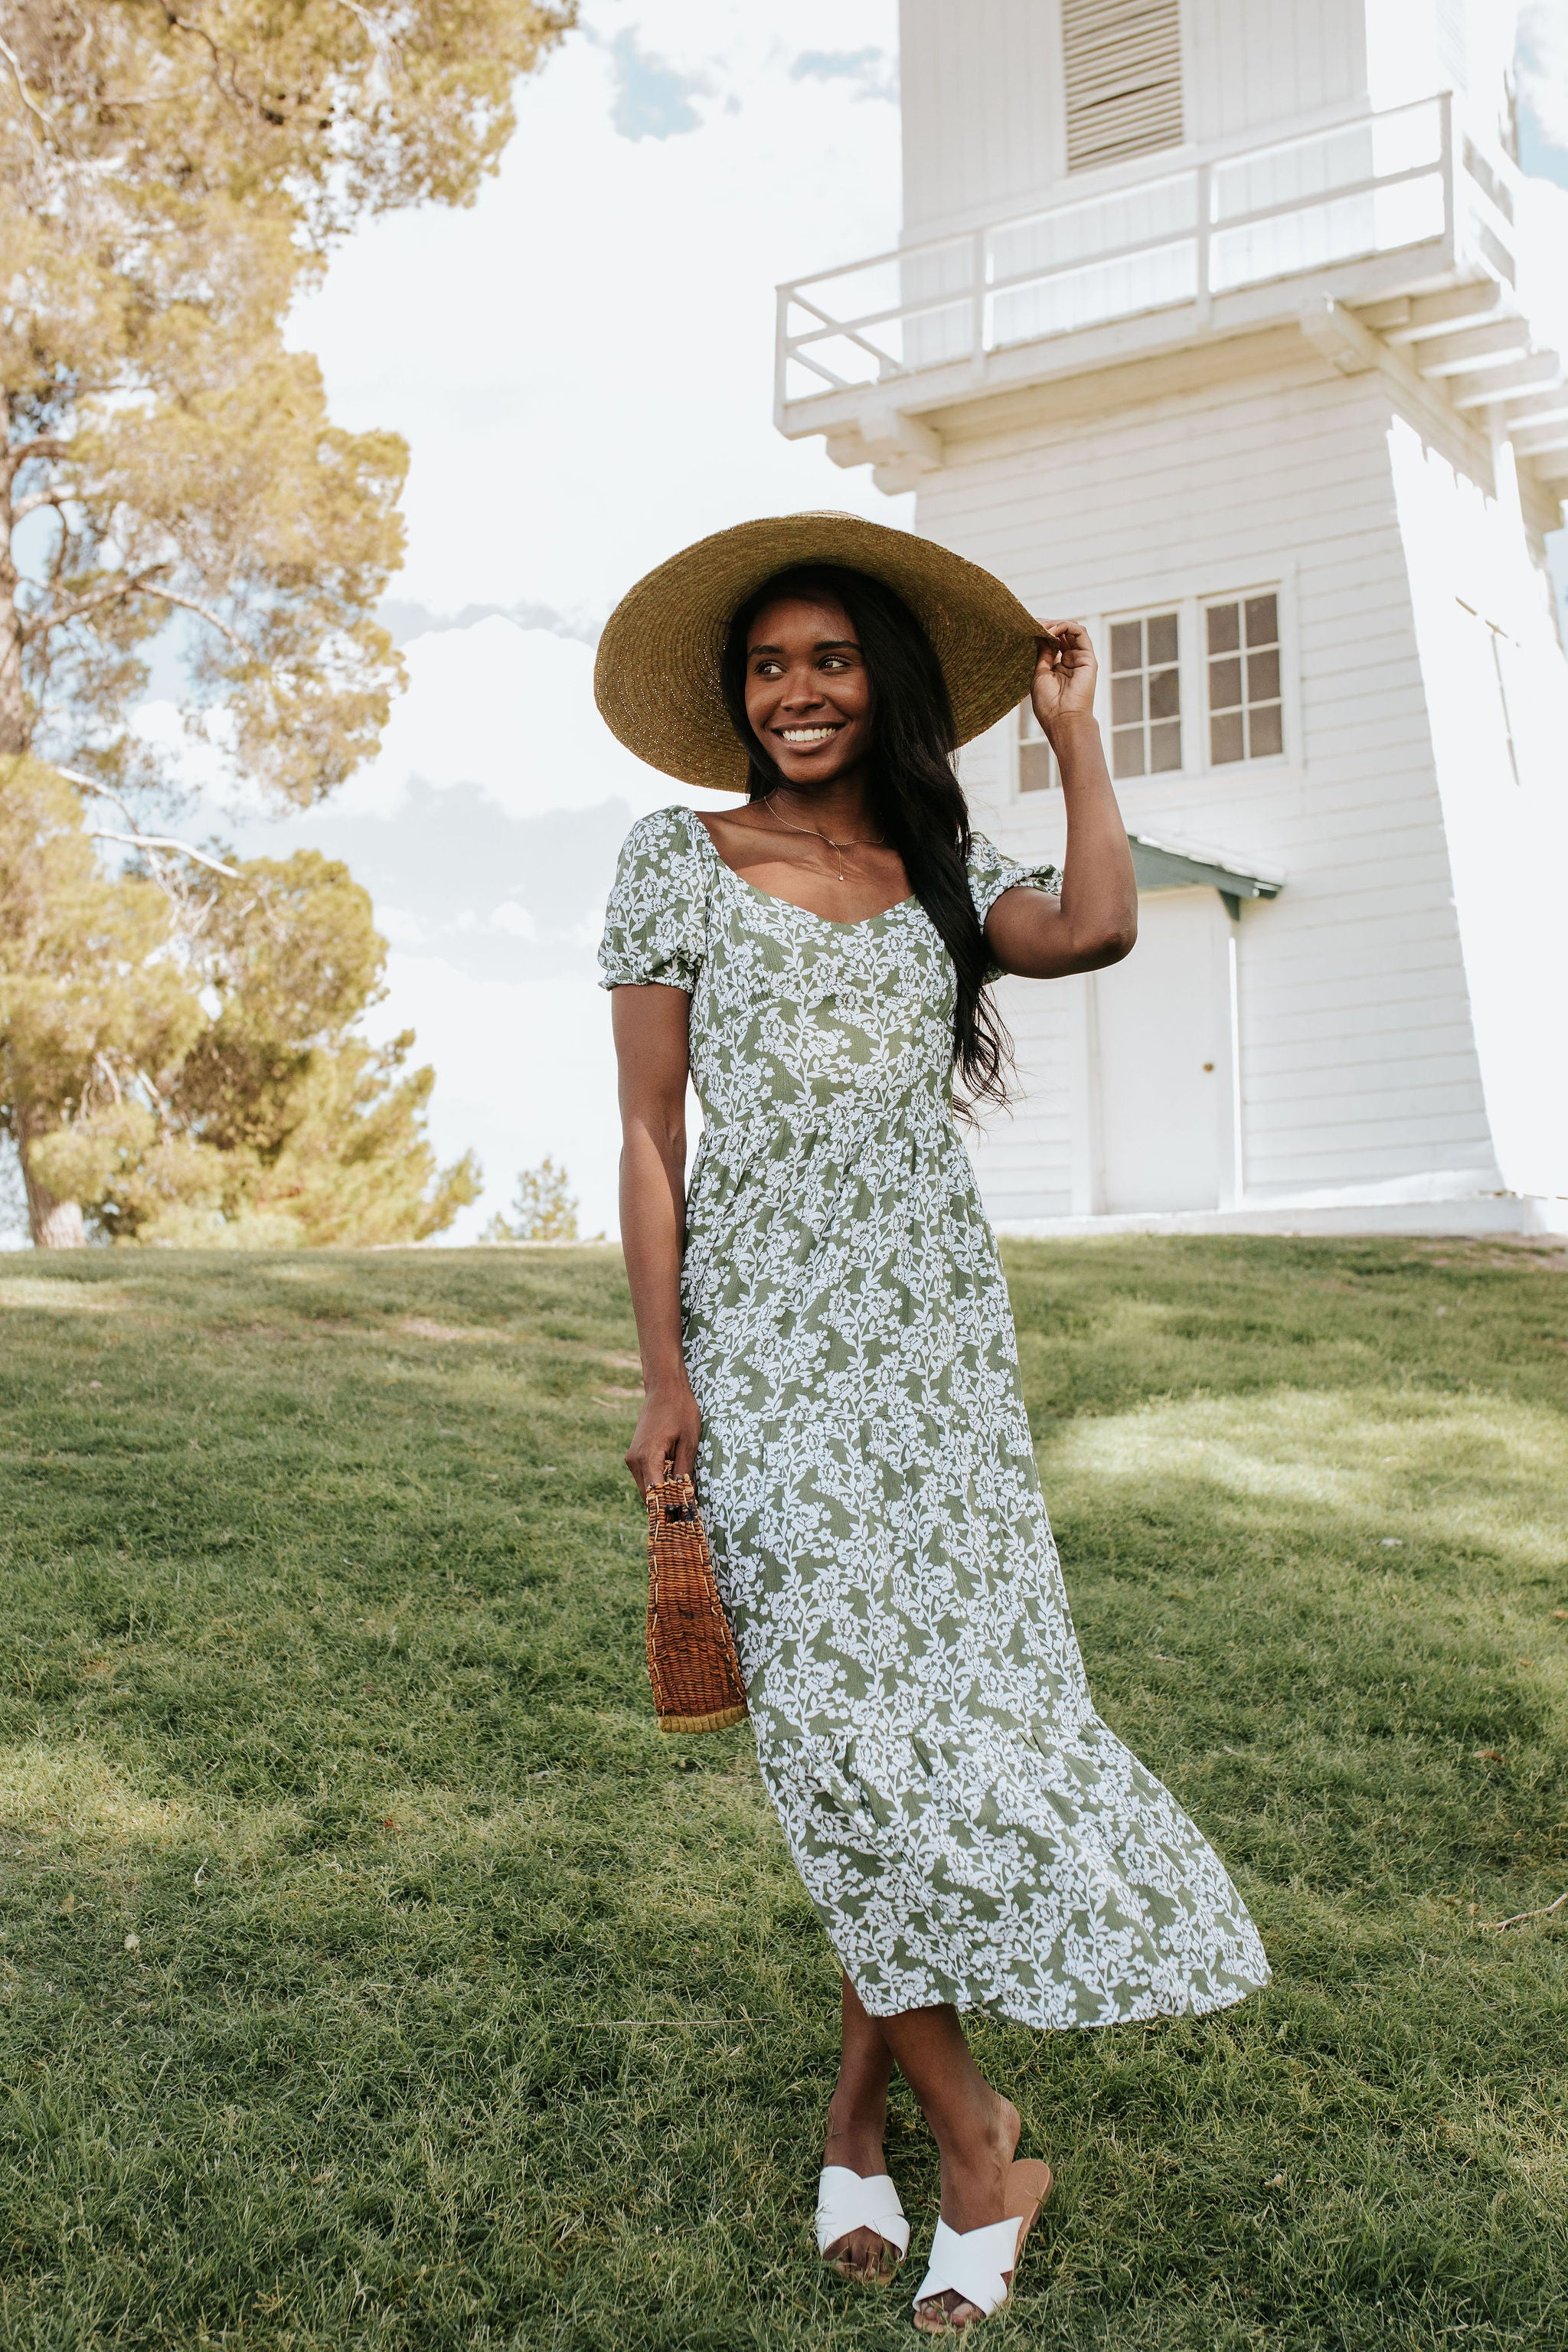 THE HAPPY FEELINGS MAXI DRESS IN GREEN FLORAL